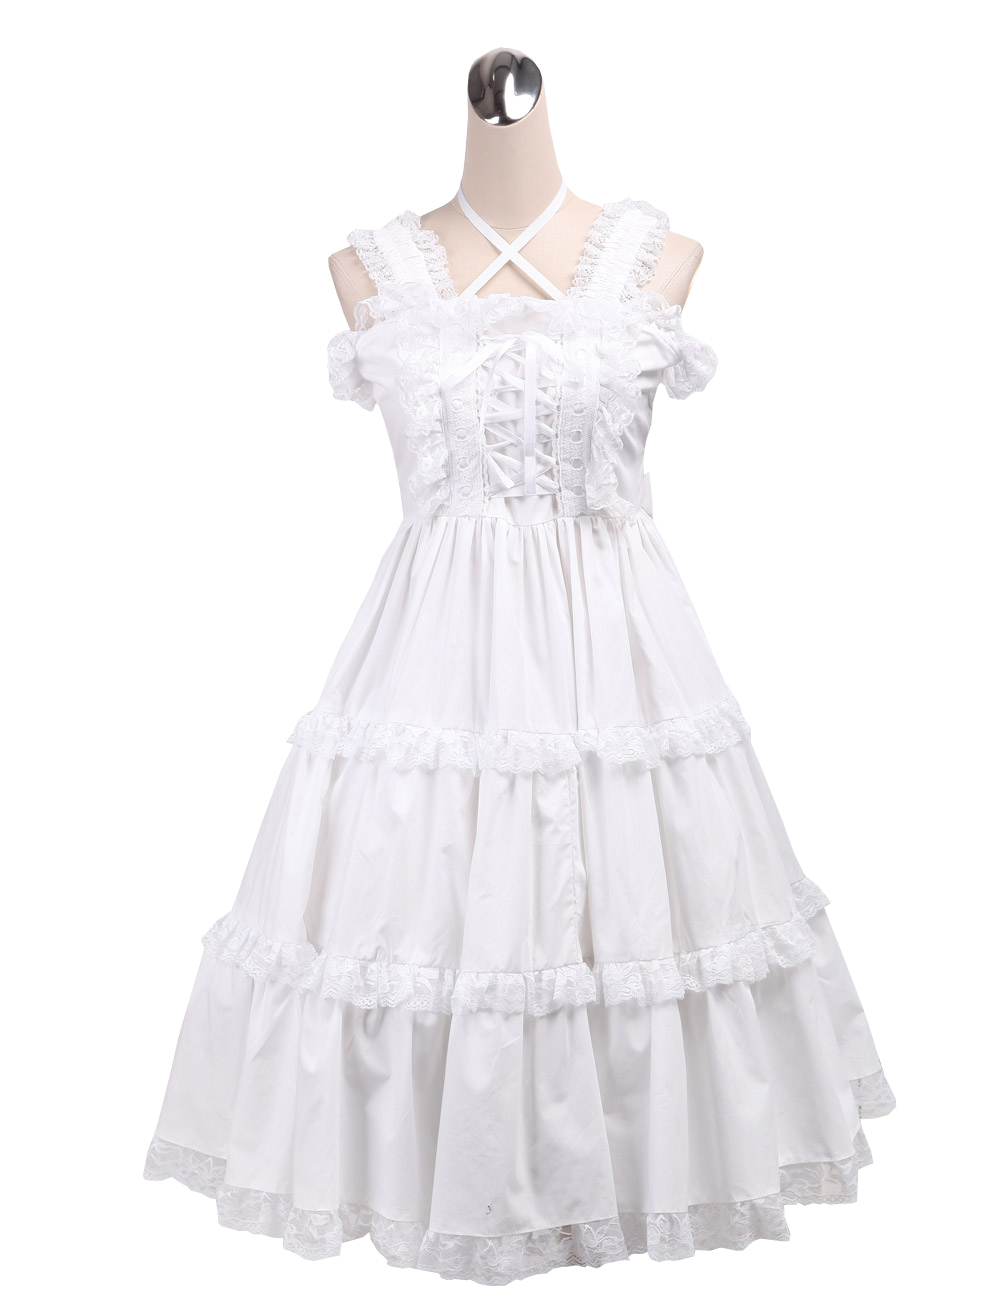 Primary image for ZeroMart White Cotton Lace Sweet Ruffles Halter Vintage Victorian Lolita Dress